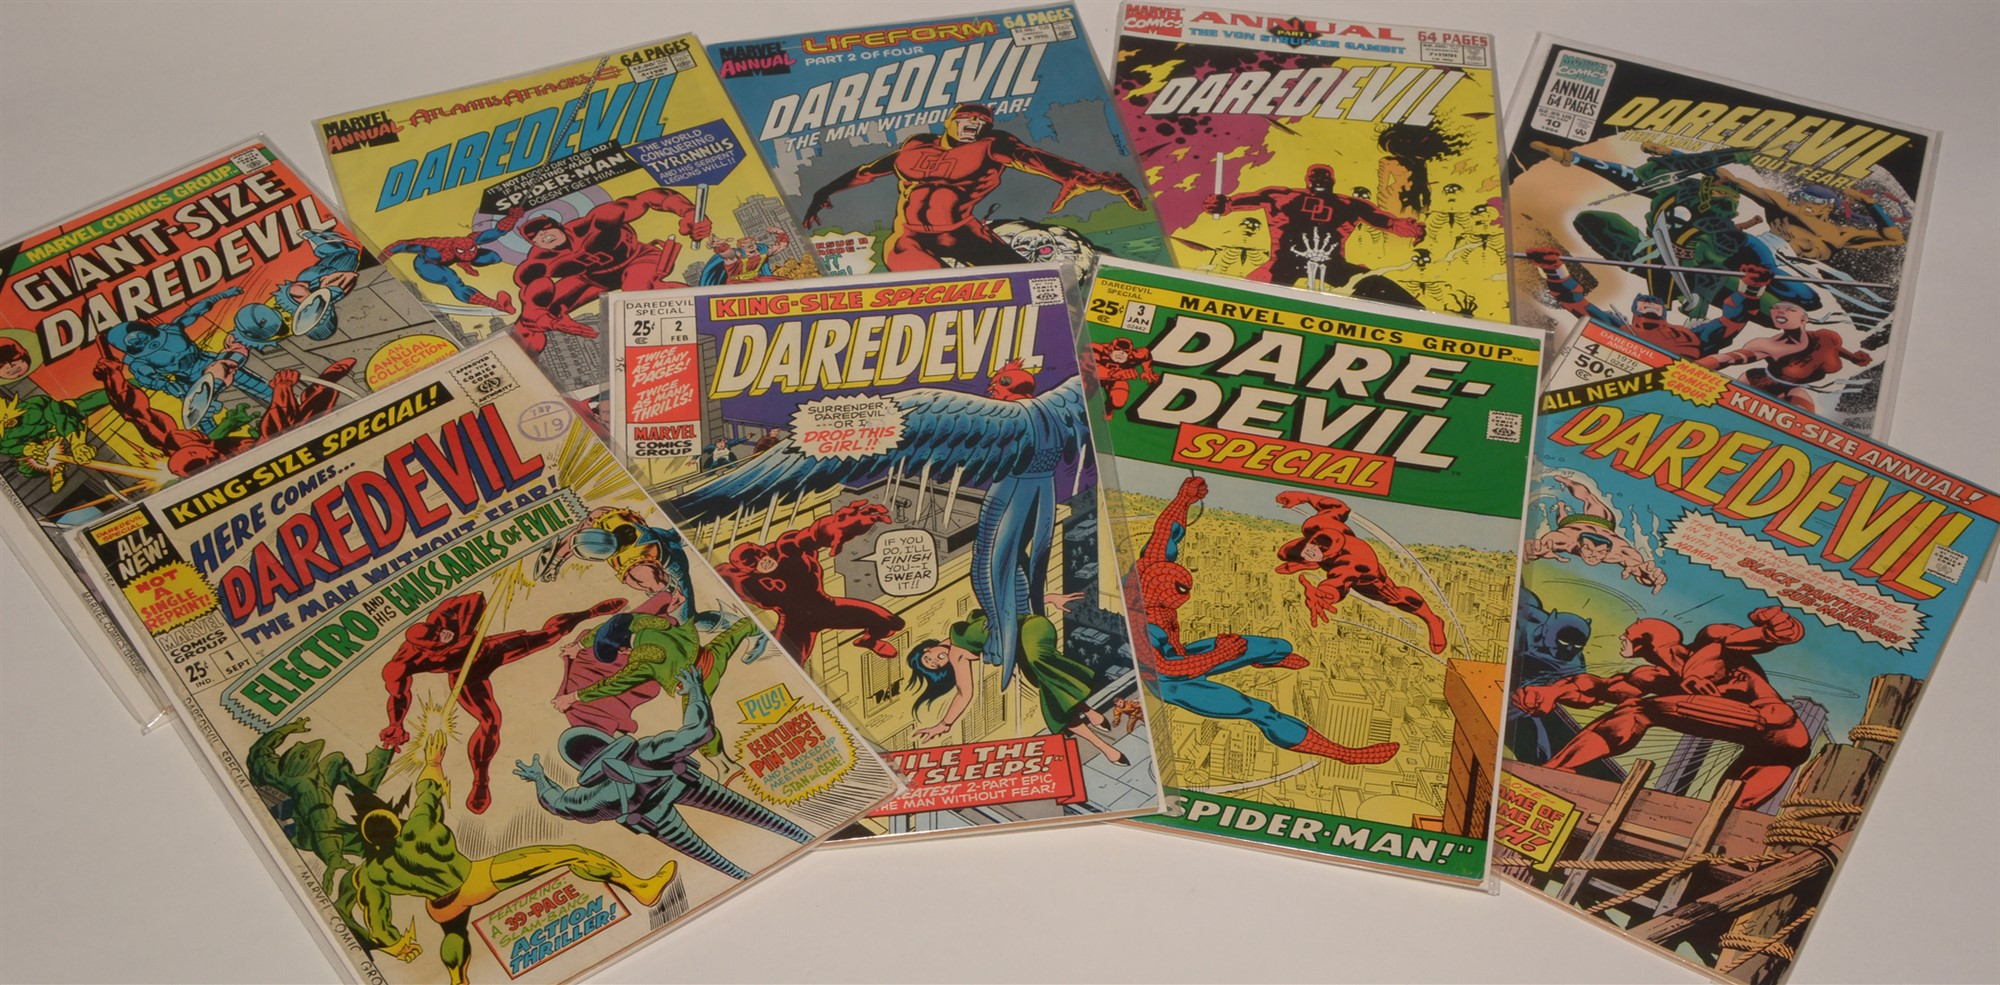 Daredevil No's. 9, 10 11 & 26-30 inclusive / Daredevil King-Size and Giant-Size Comics; and 64-Page - Image 3 of 3